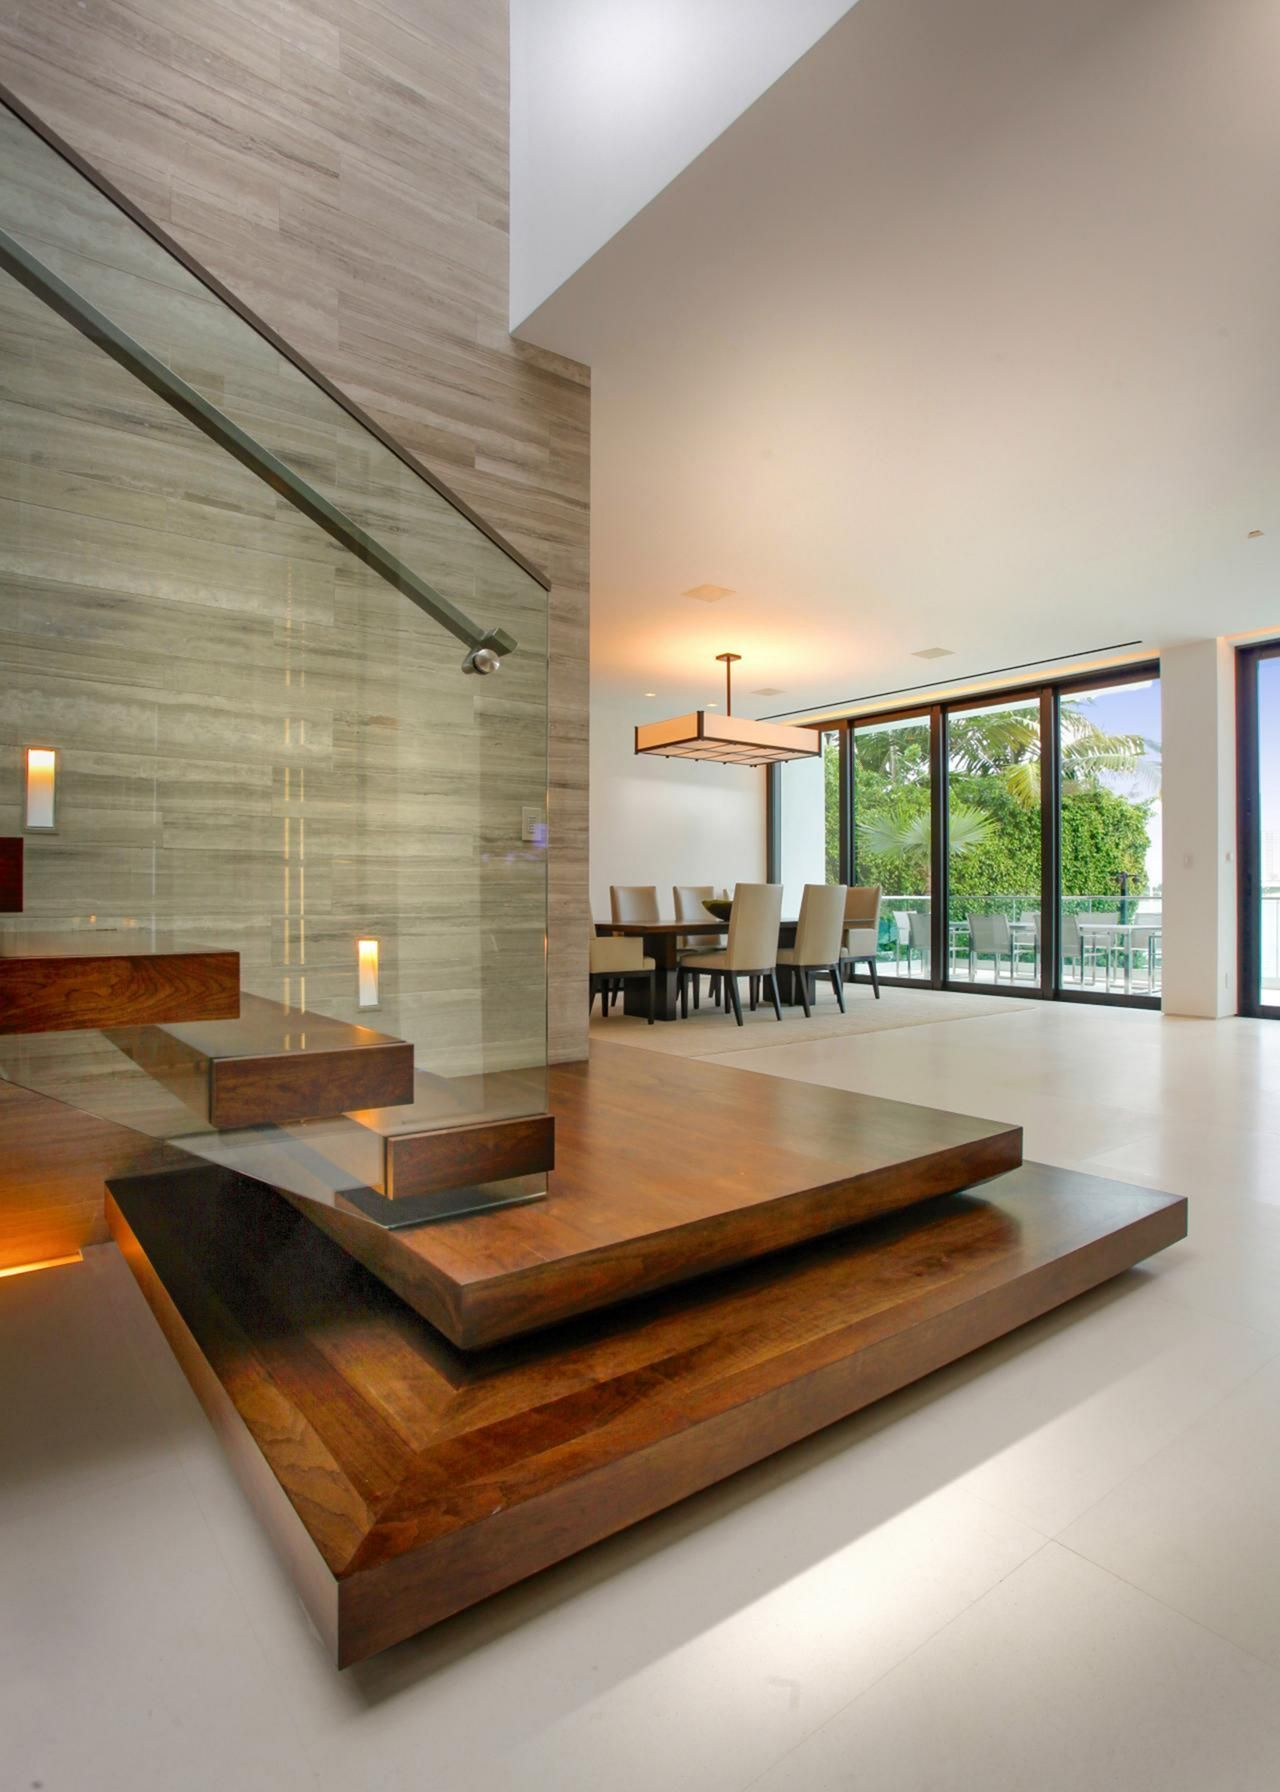 30 Brilliant Modern Indoor Stair Design Ideas You Must See images